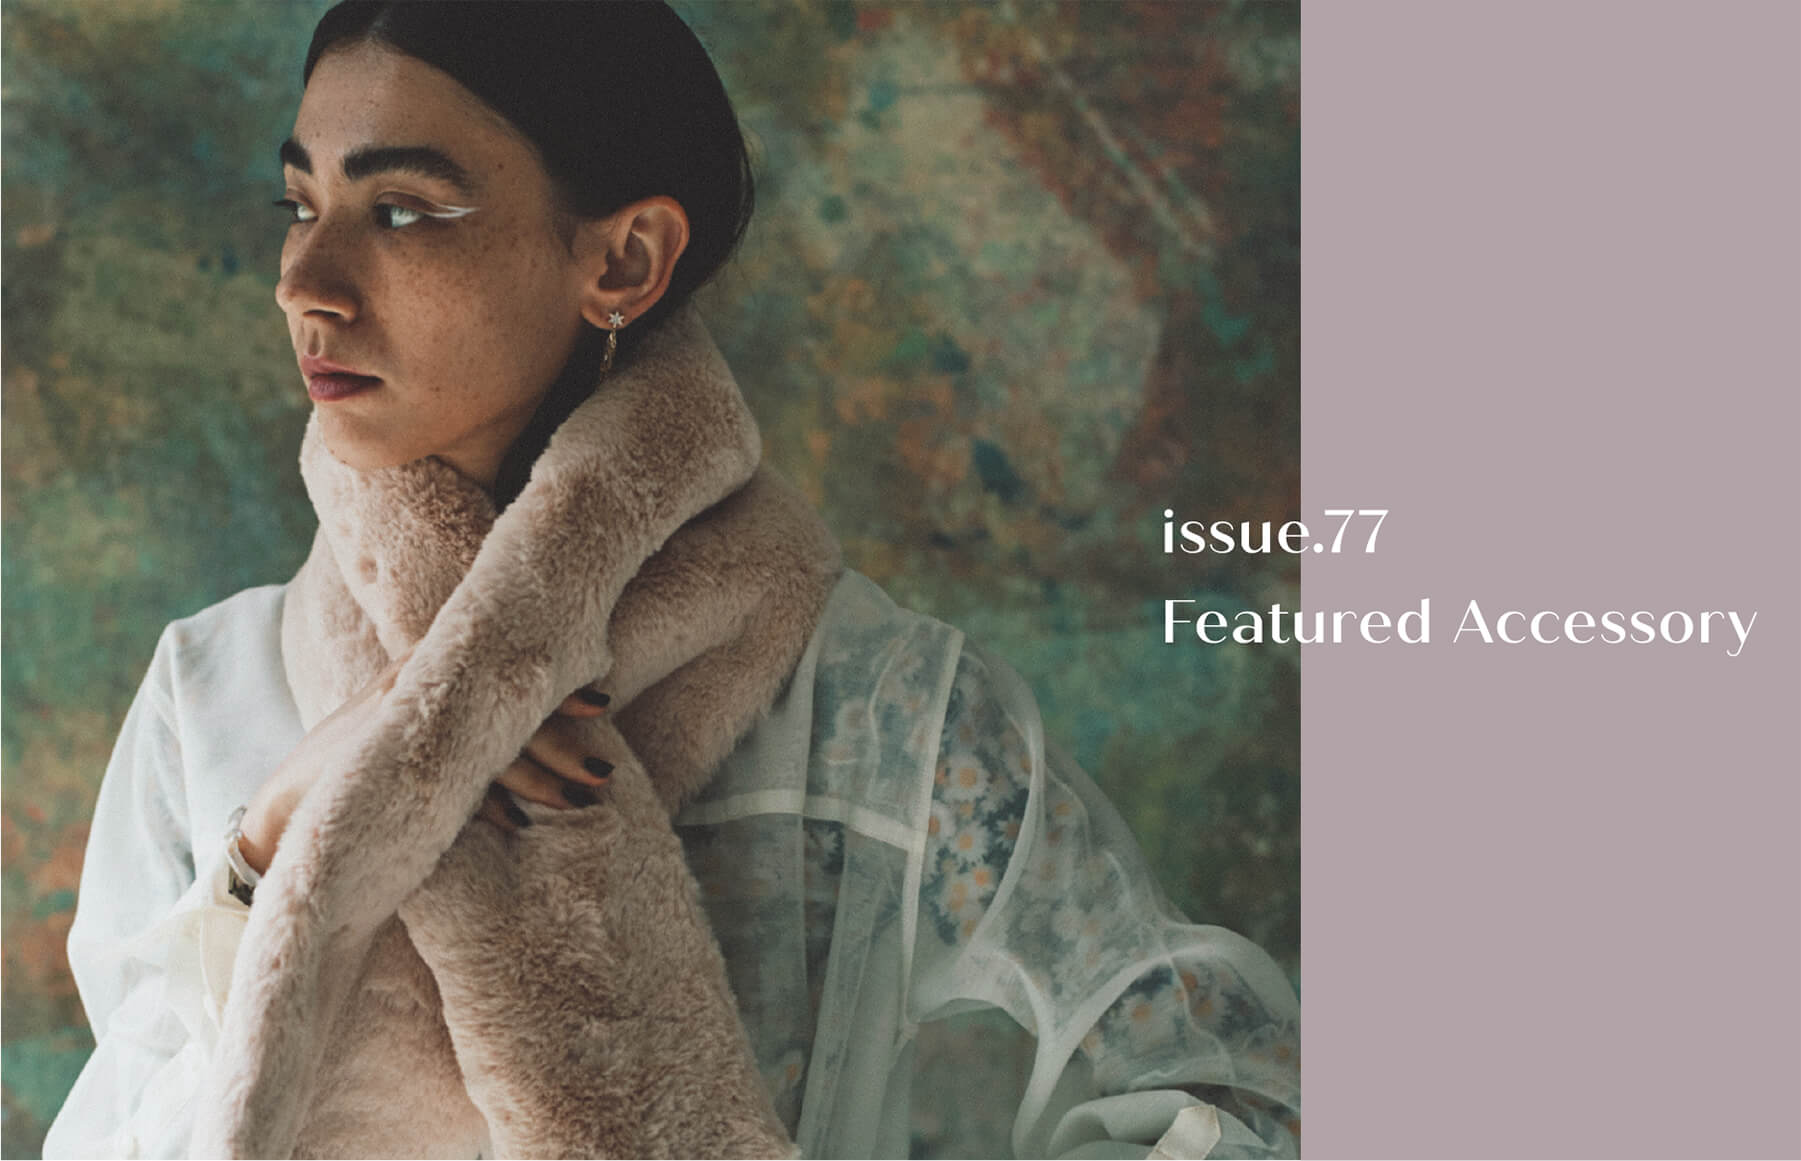 issue.77 Featured Accessory